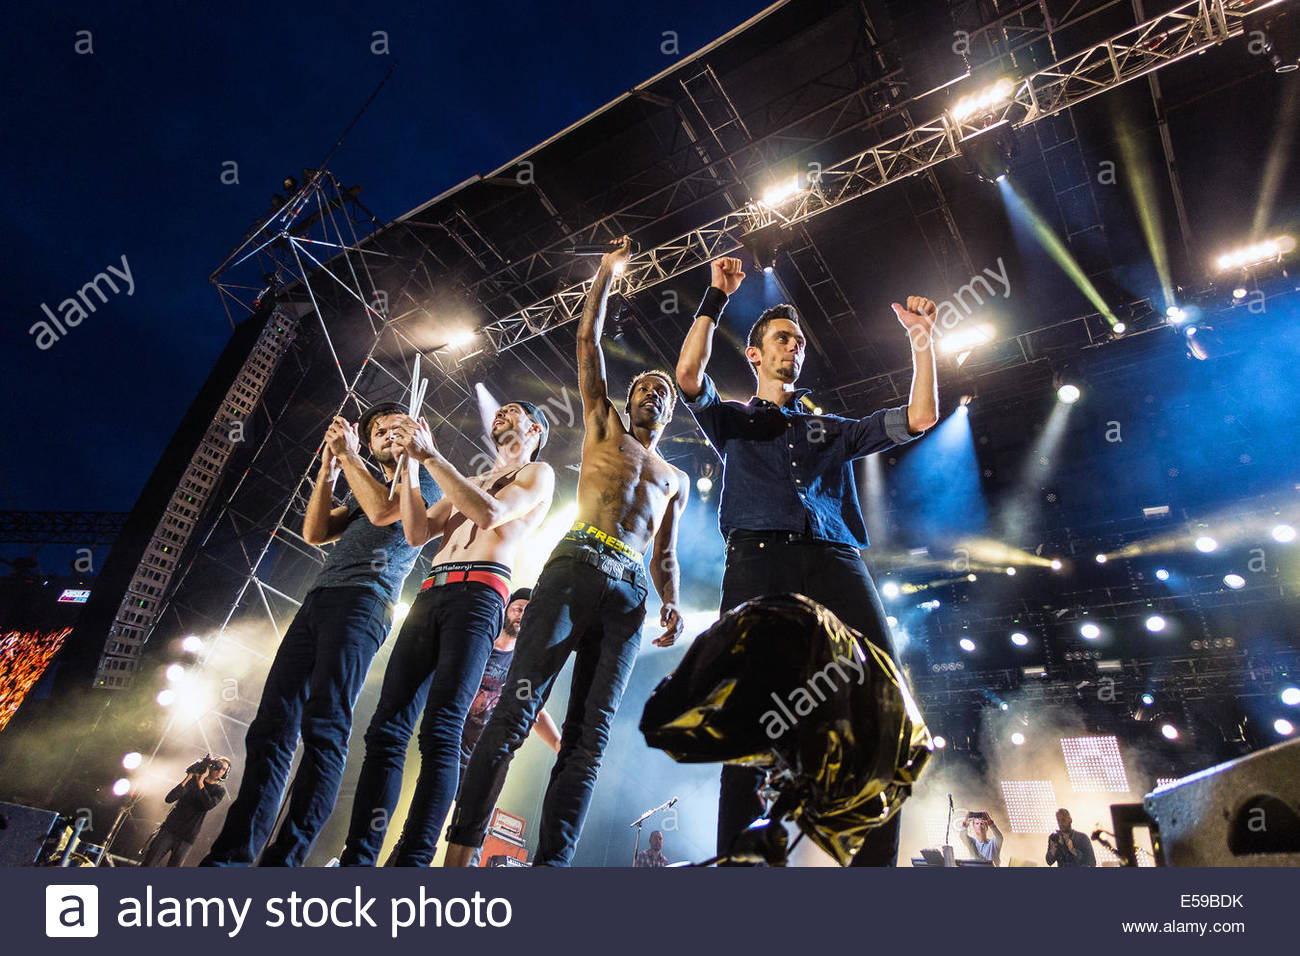 Skip the Use performing live - Stock Image